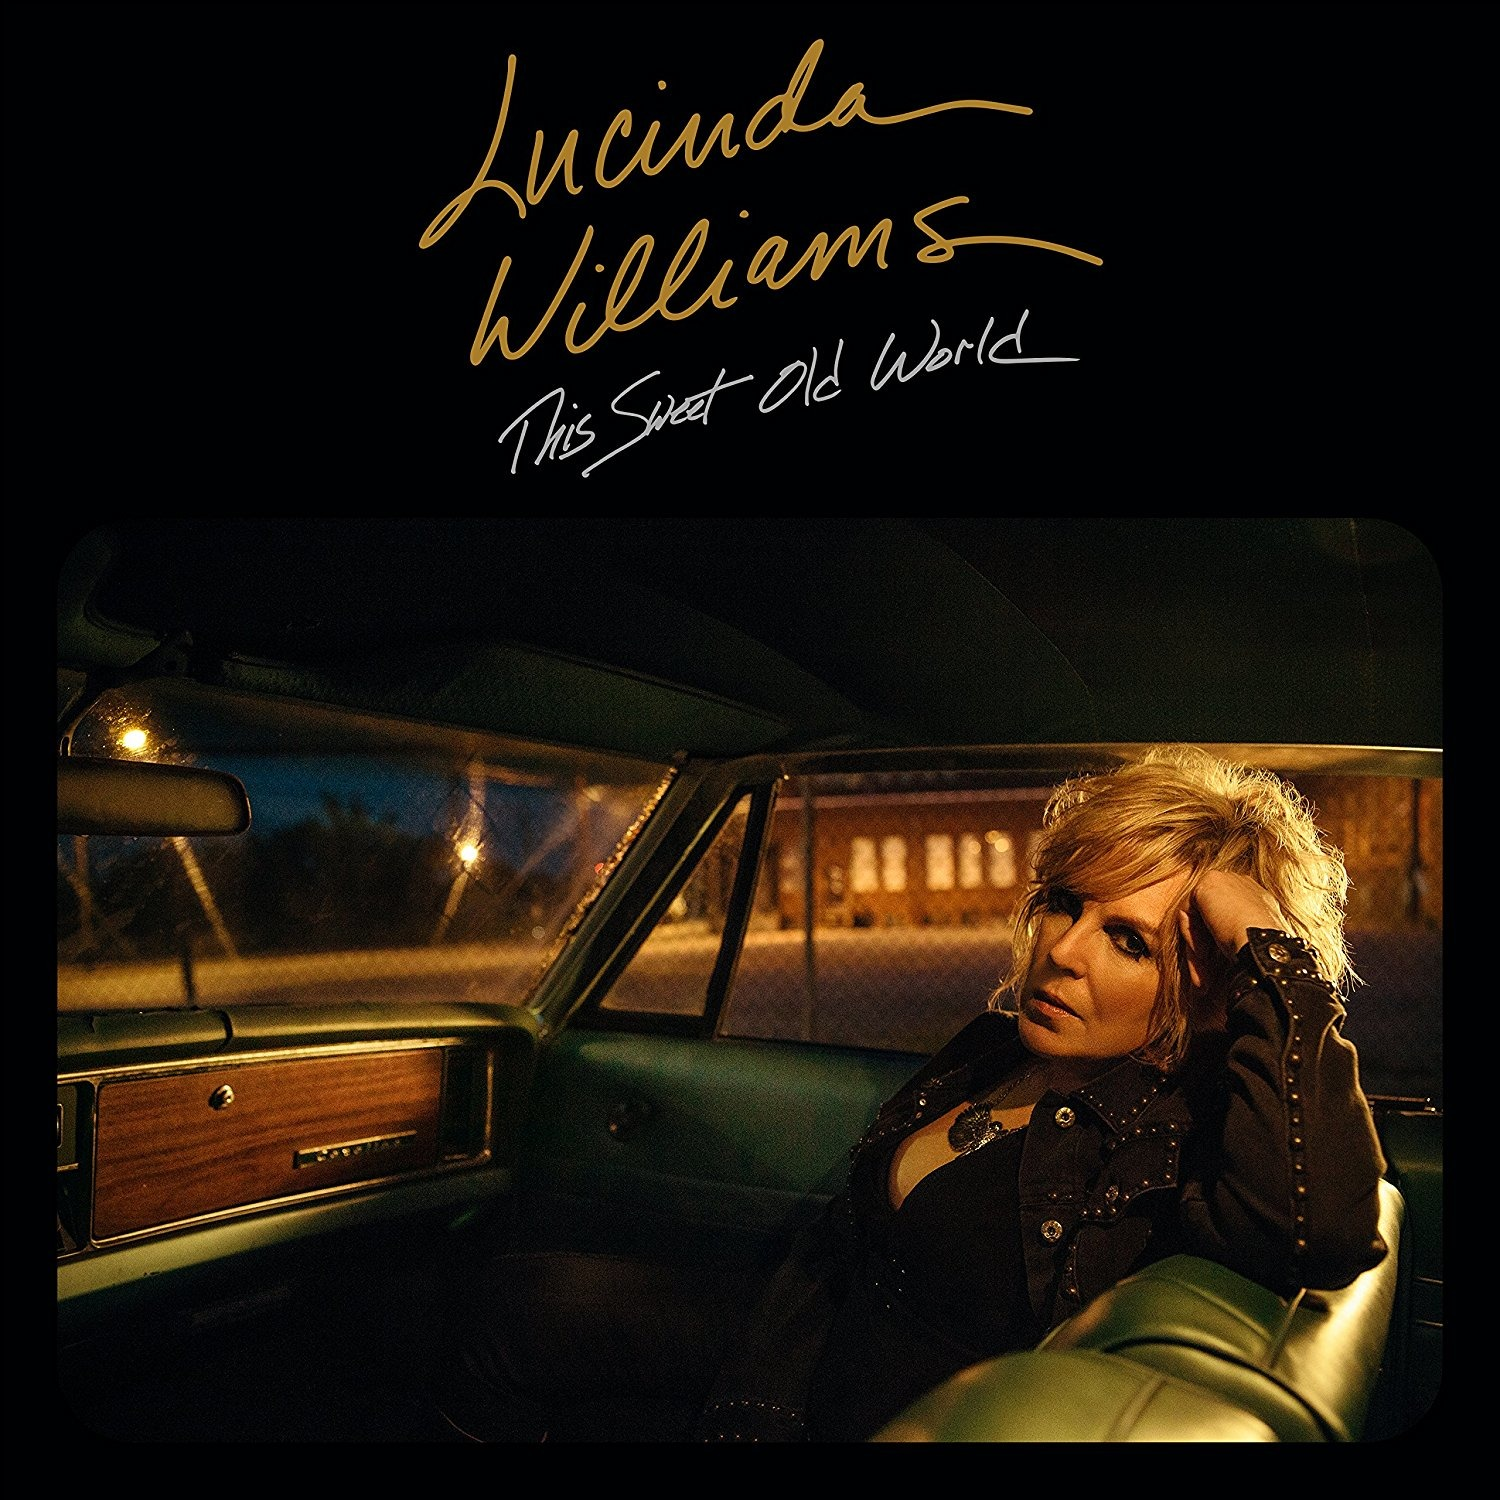 THIS SWEET OLD WORLD (25th ANNIVERSARY EDITION) (PINK COLOR VINYL) - Lucinda Williams - Musik - ROCK - 0752830445512 - October 3, 2017